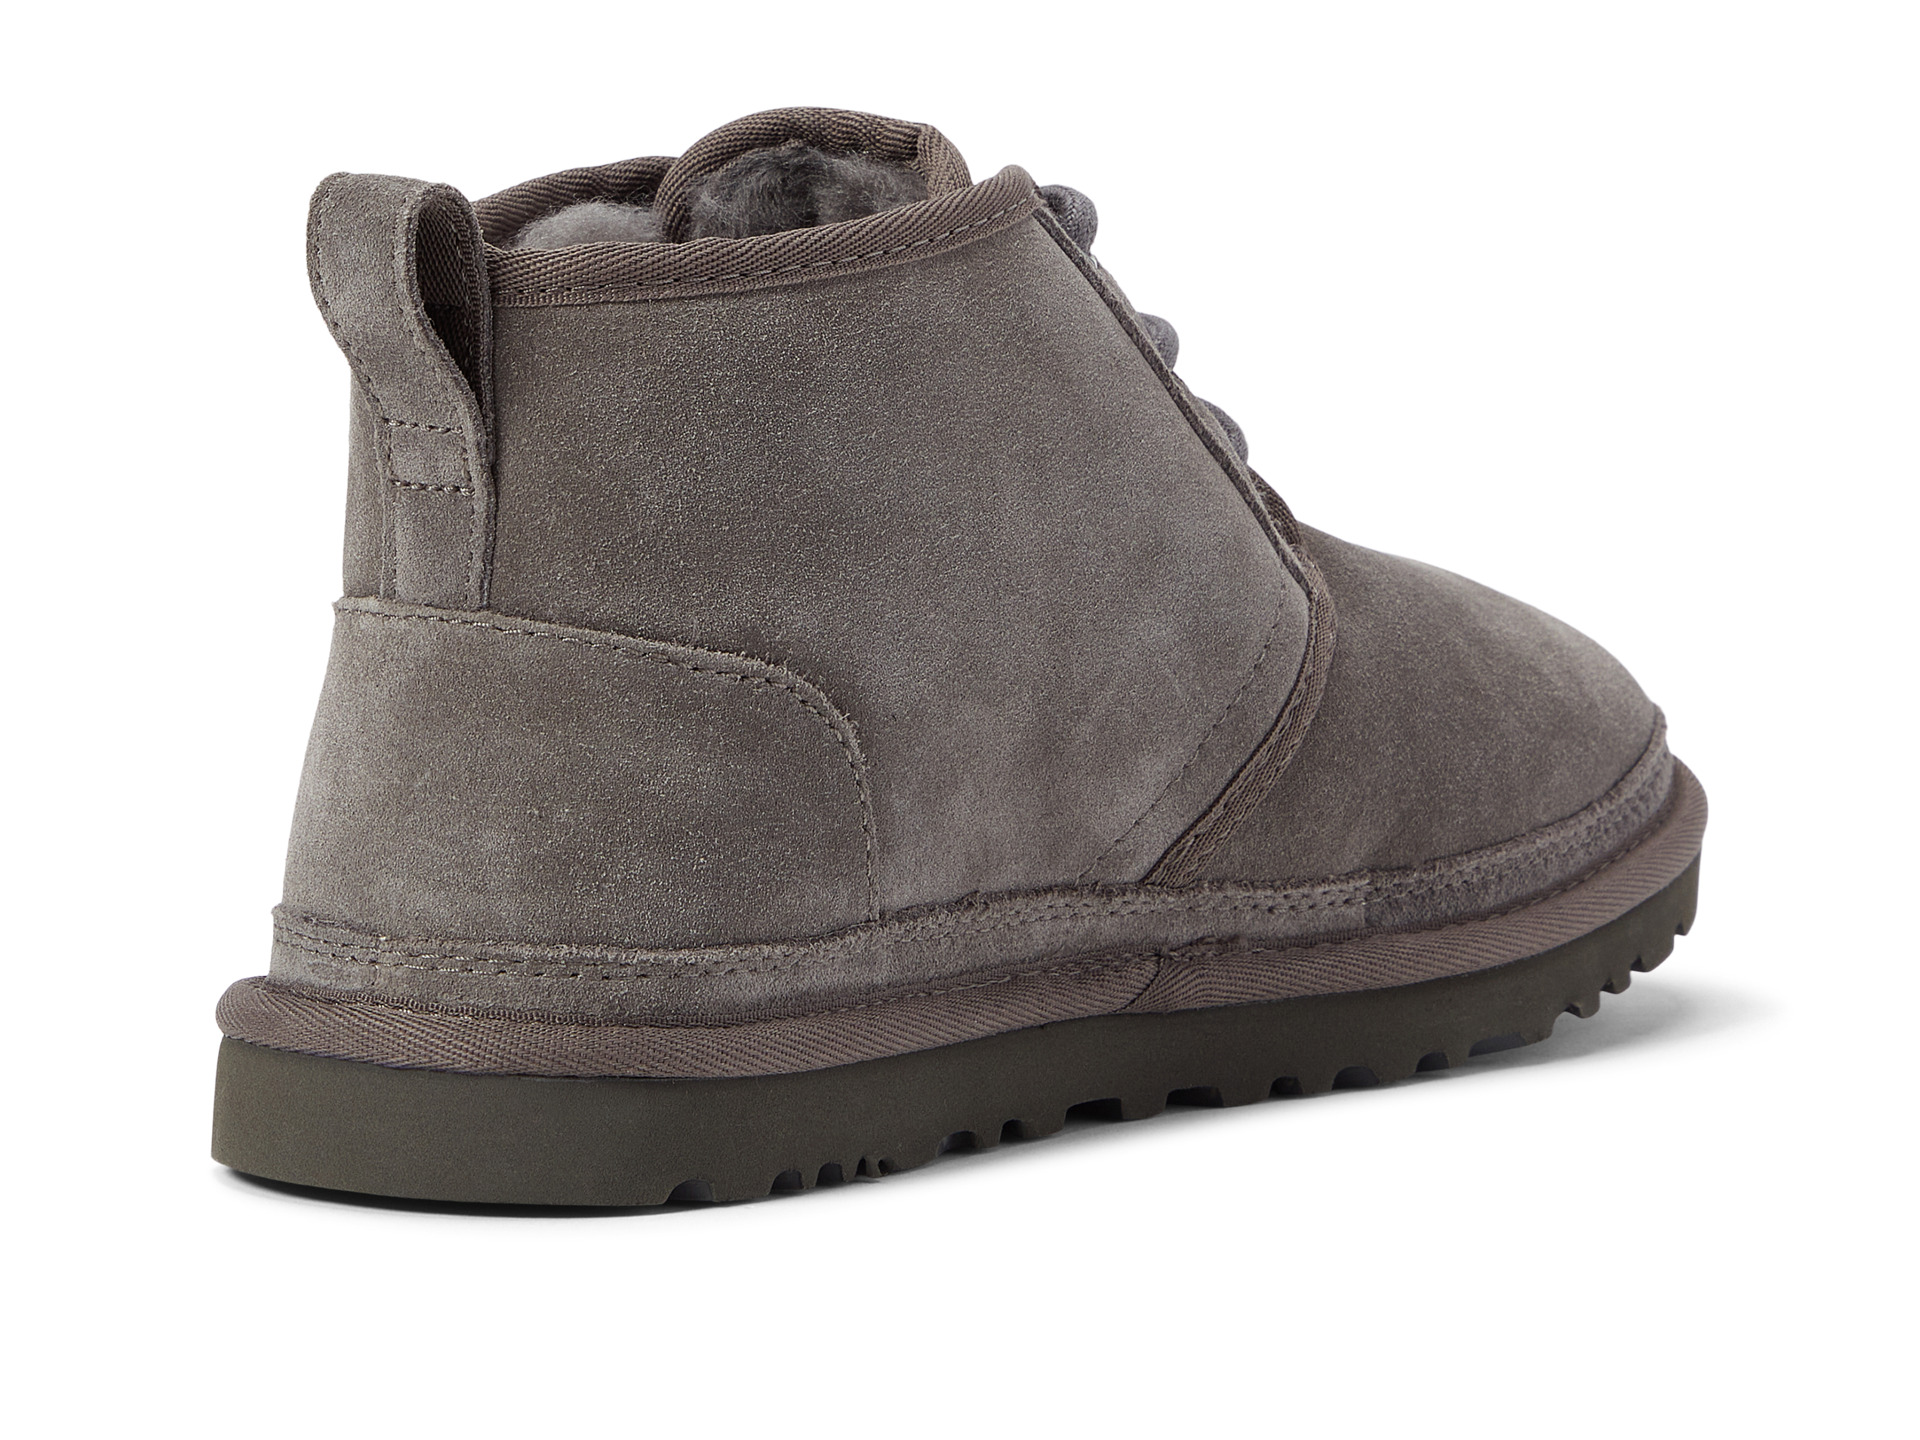 mens ugg boots size 9